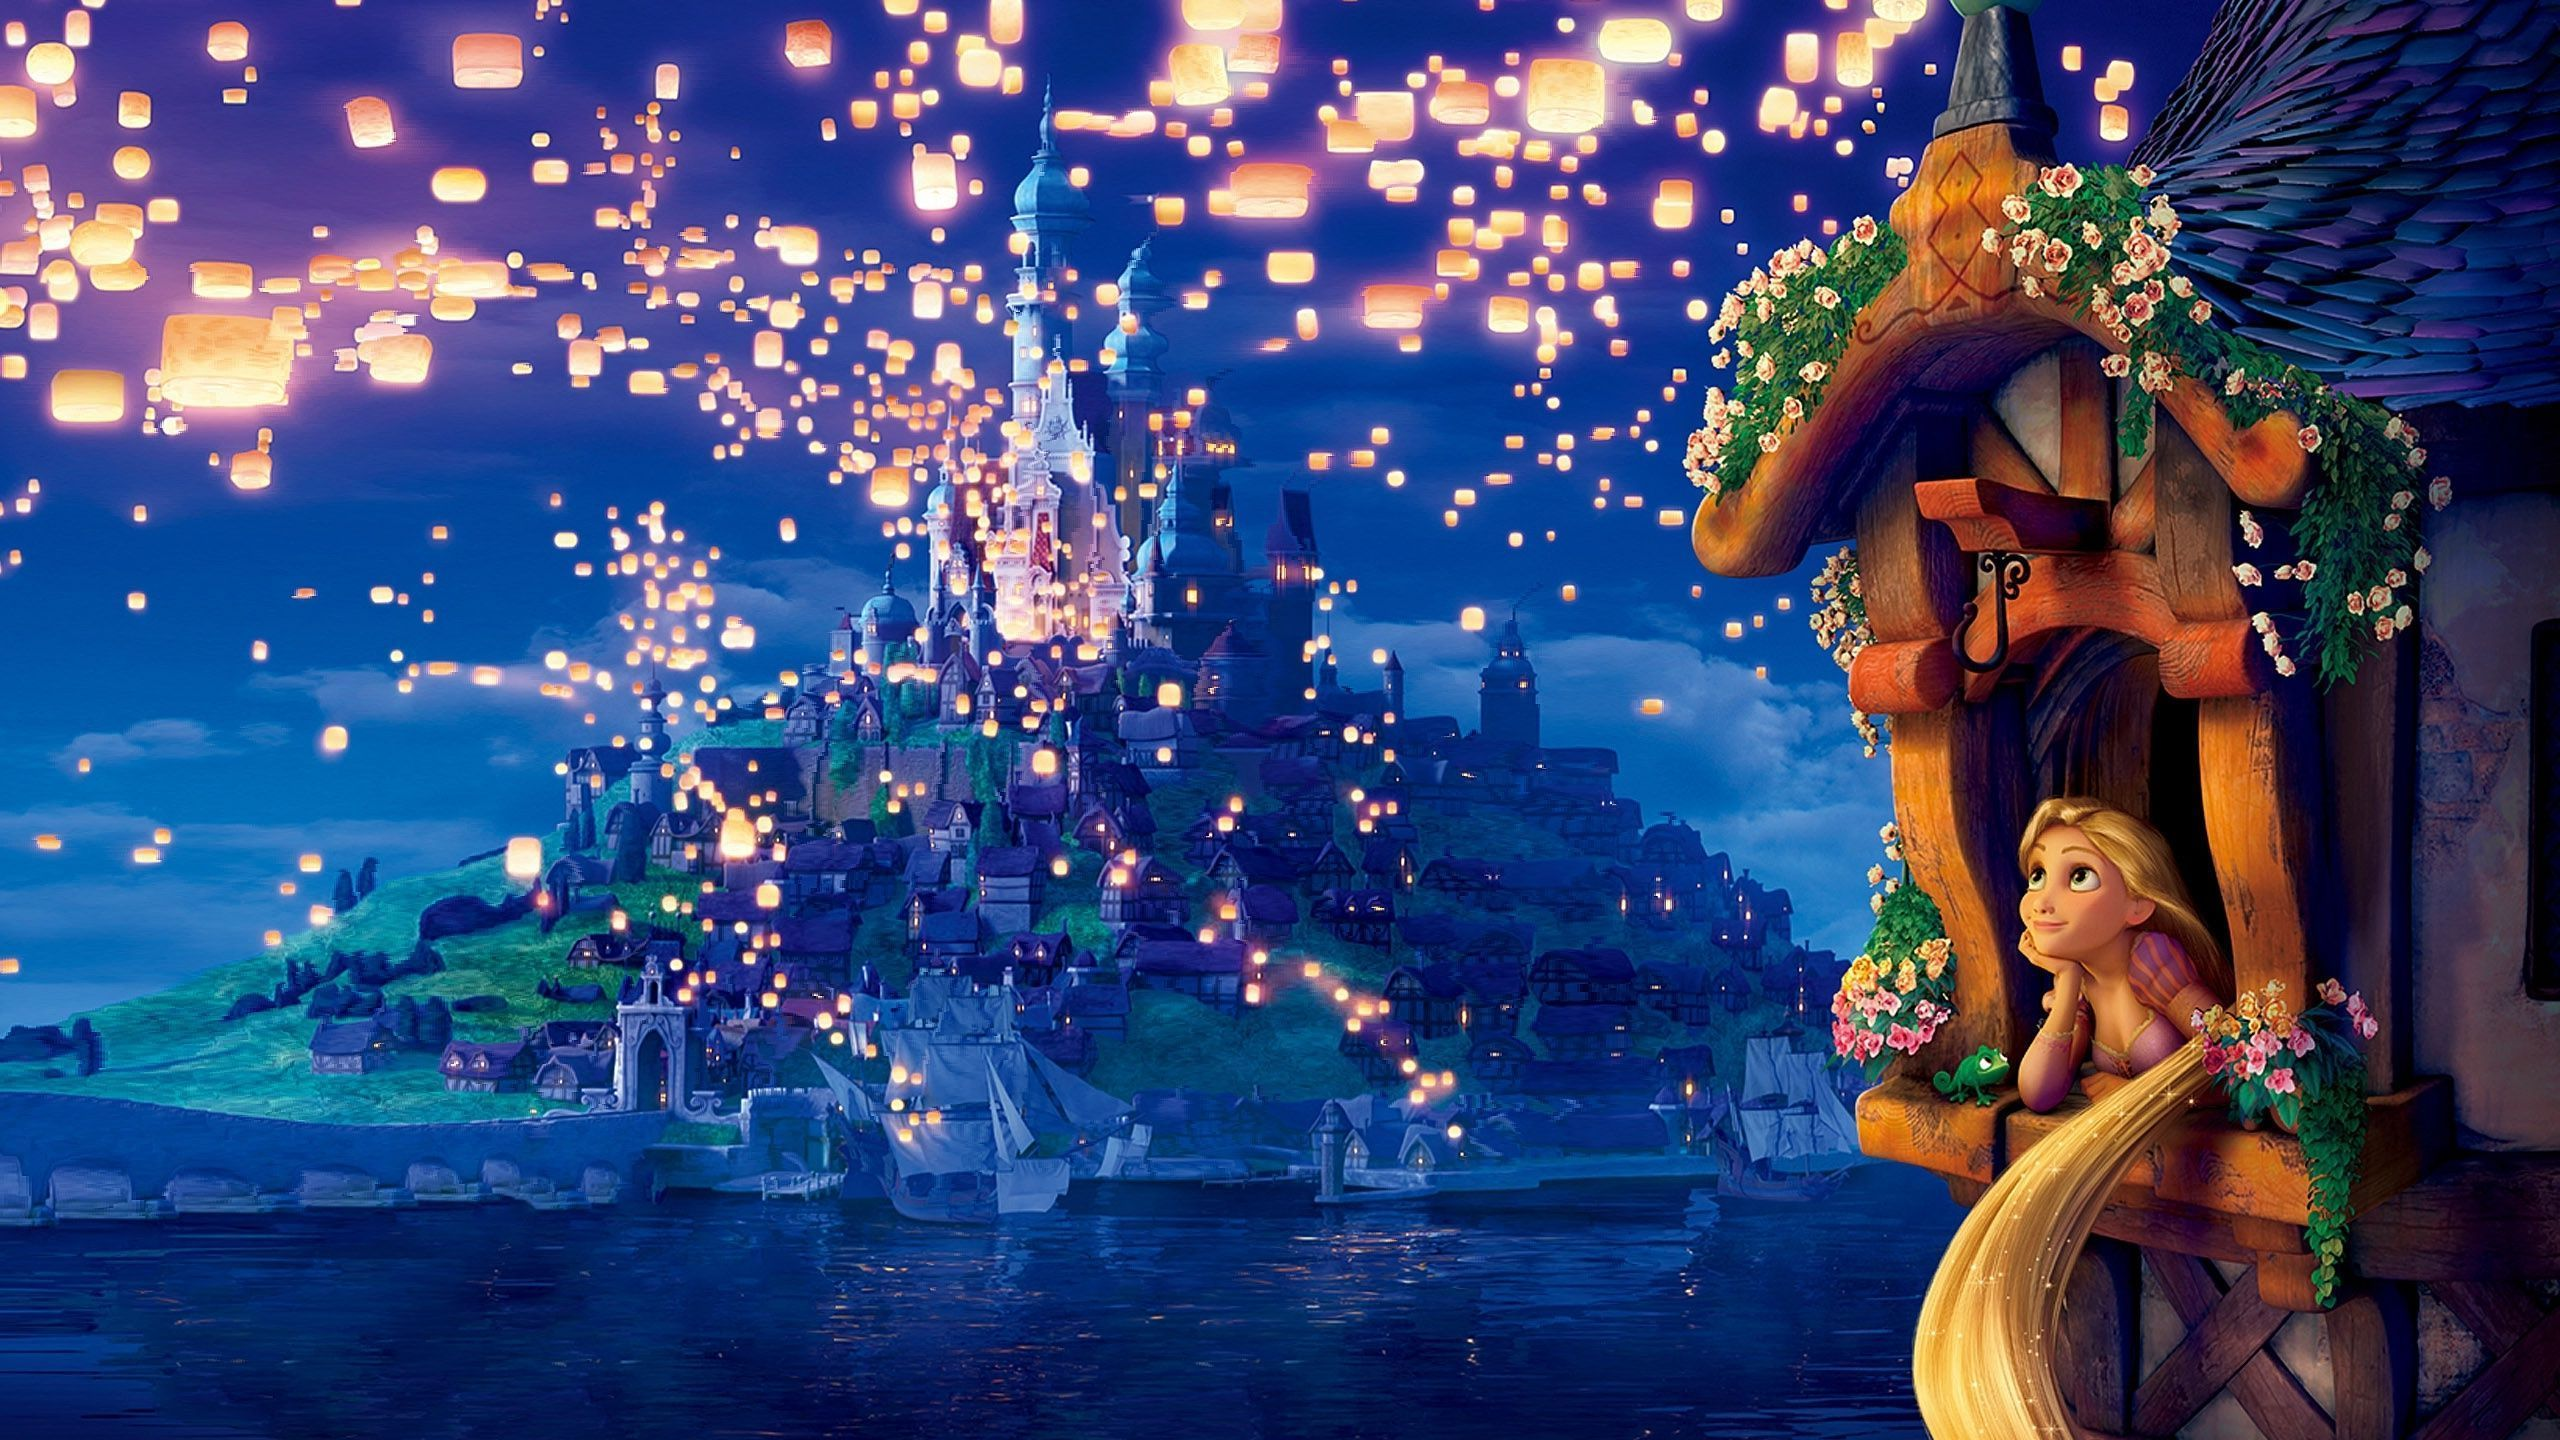 tangled-hd-wallpapers-2